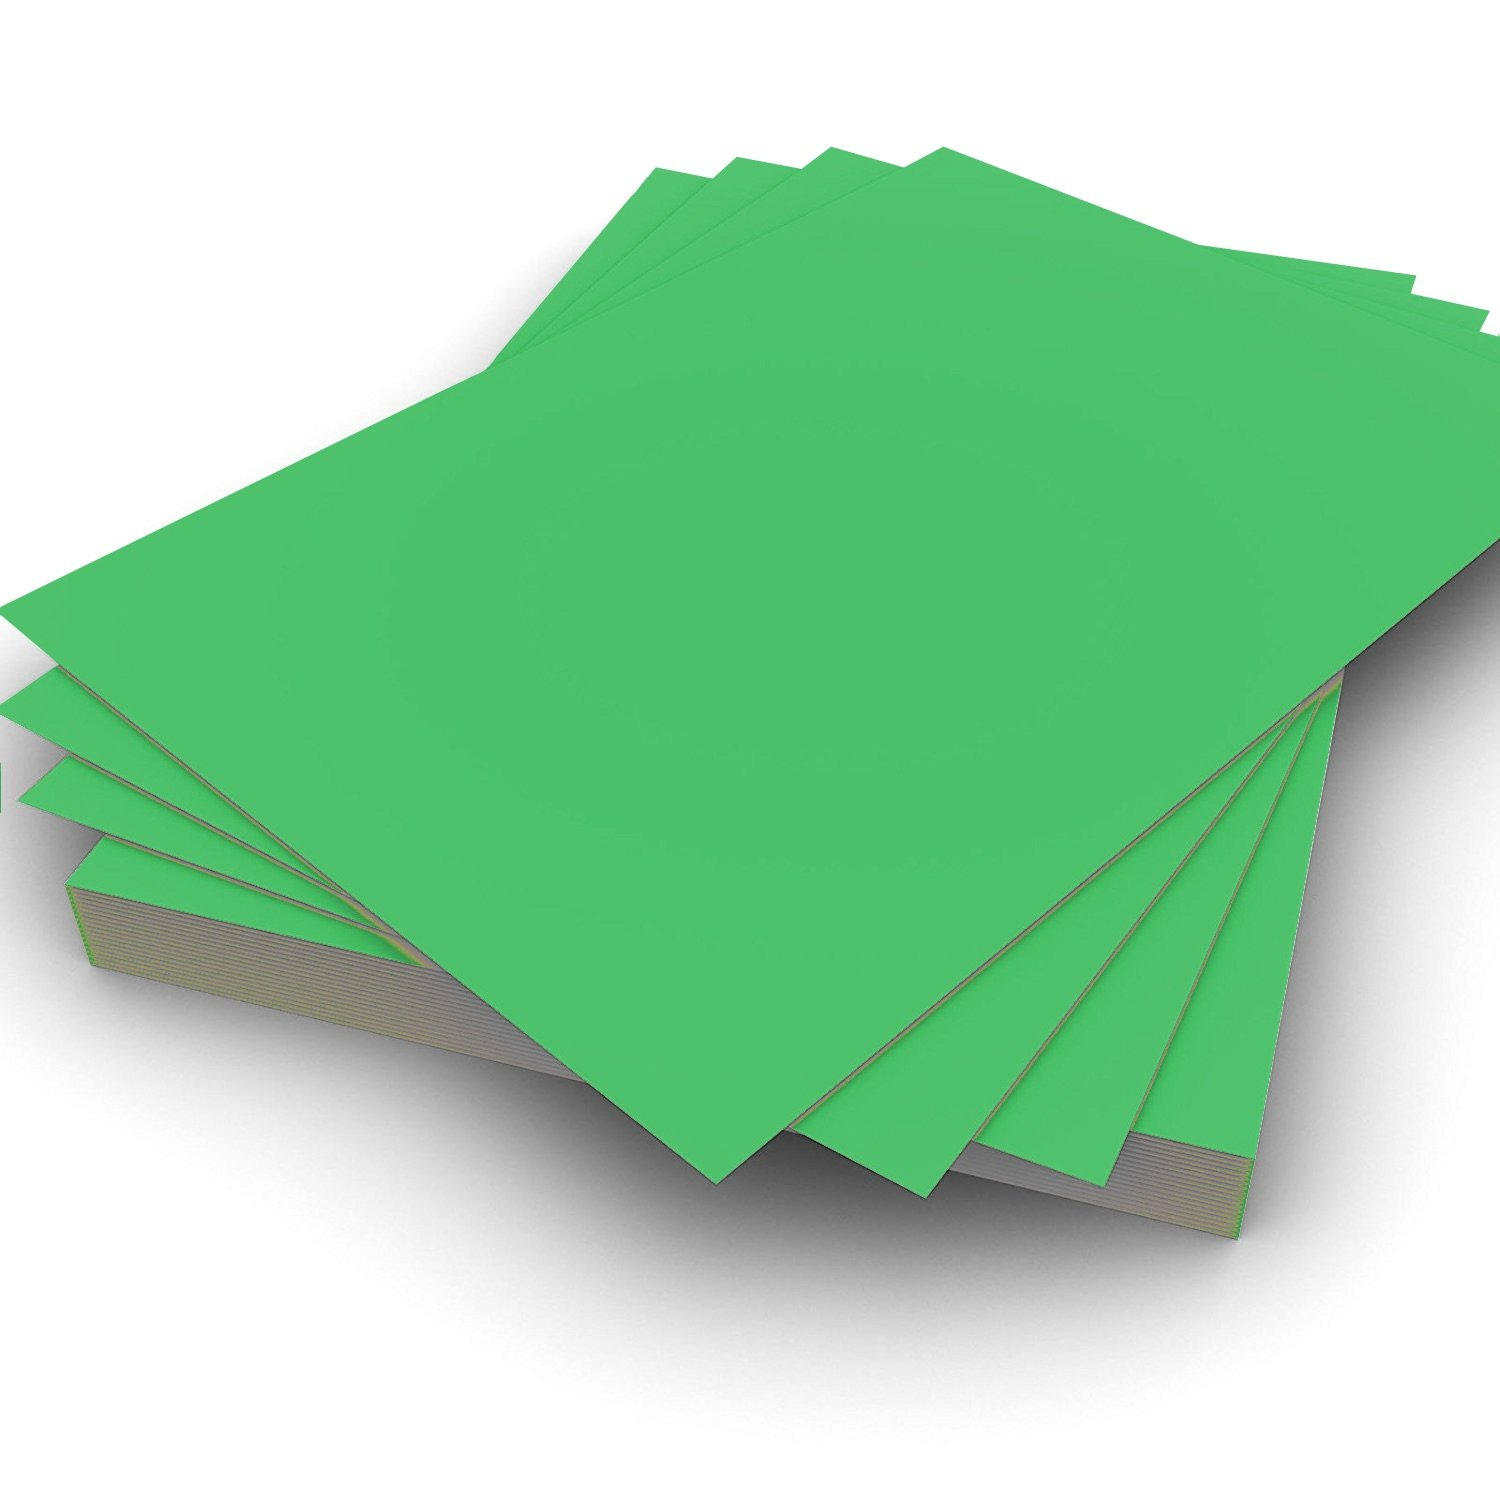 A4 80gsm Plain Green Paper Pack of 25 Perfect for Printing on and general office use by Party Decor